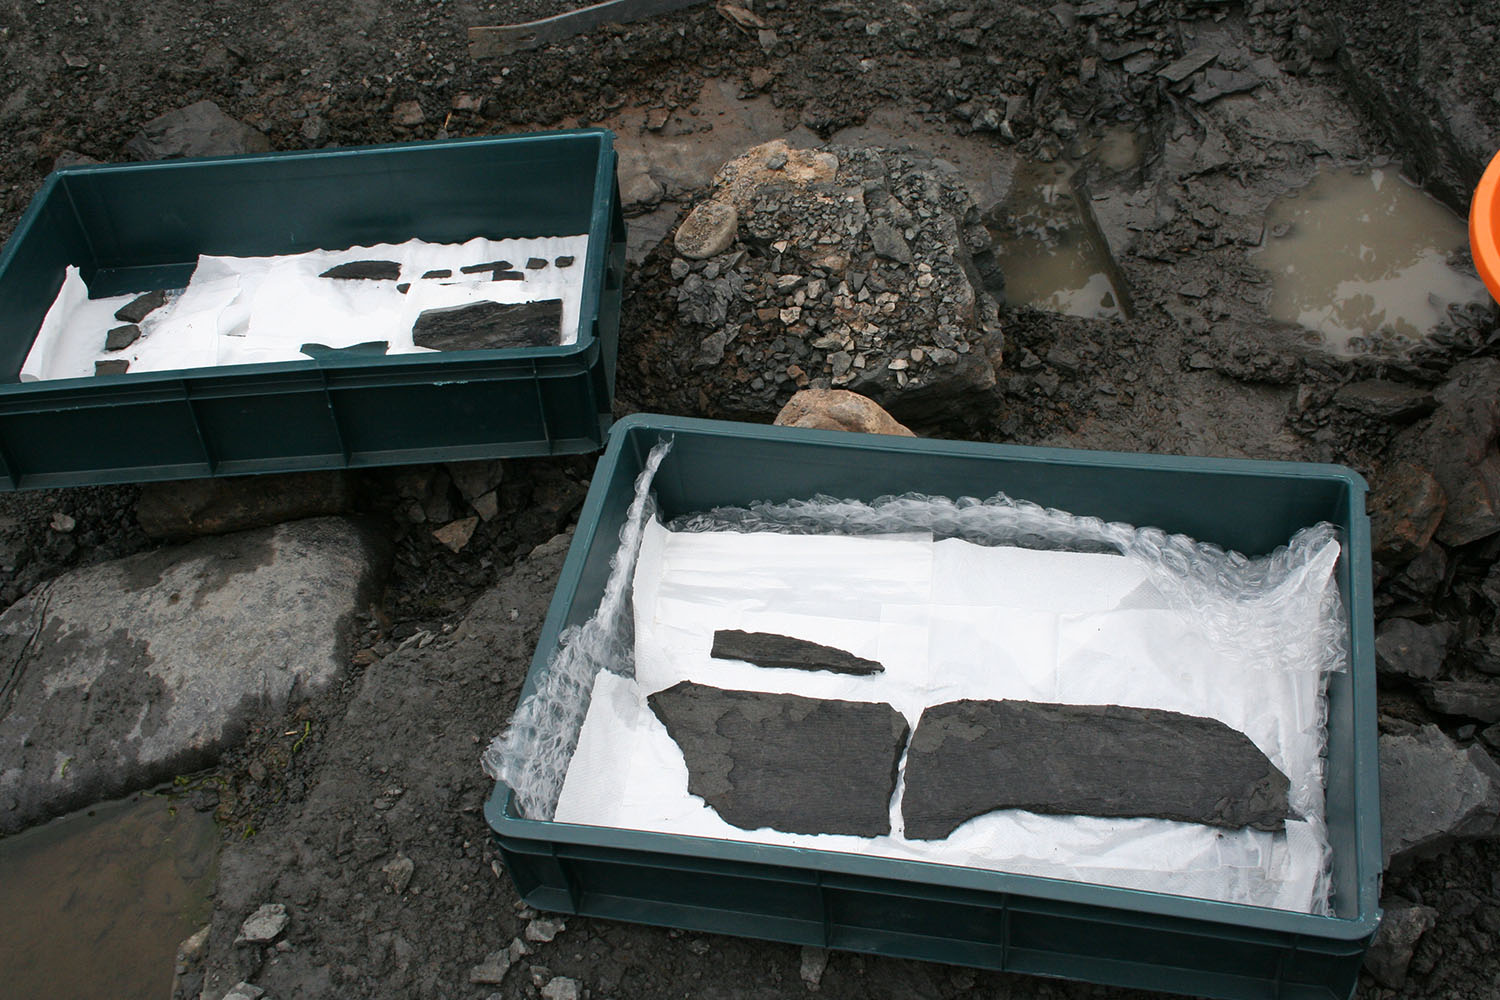 Selected fossils are carefully packed away and removed for further study.